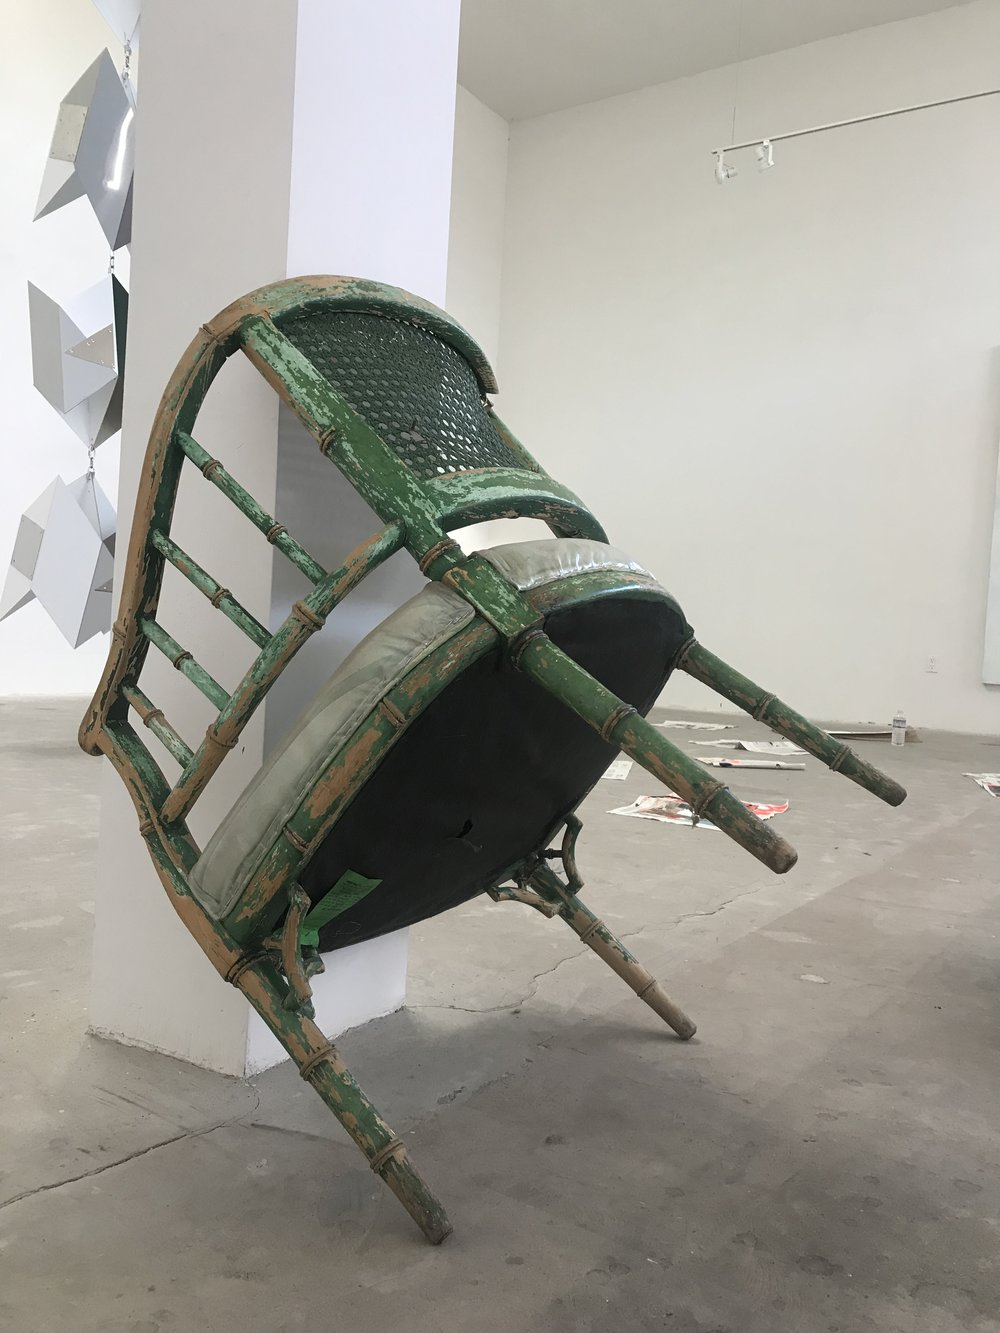 a chair holding comfort